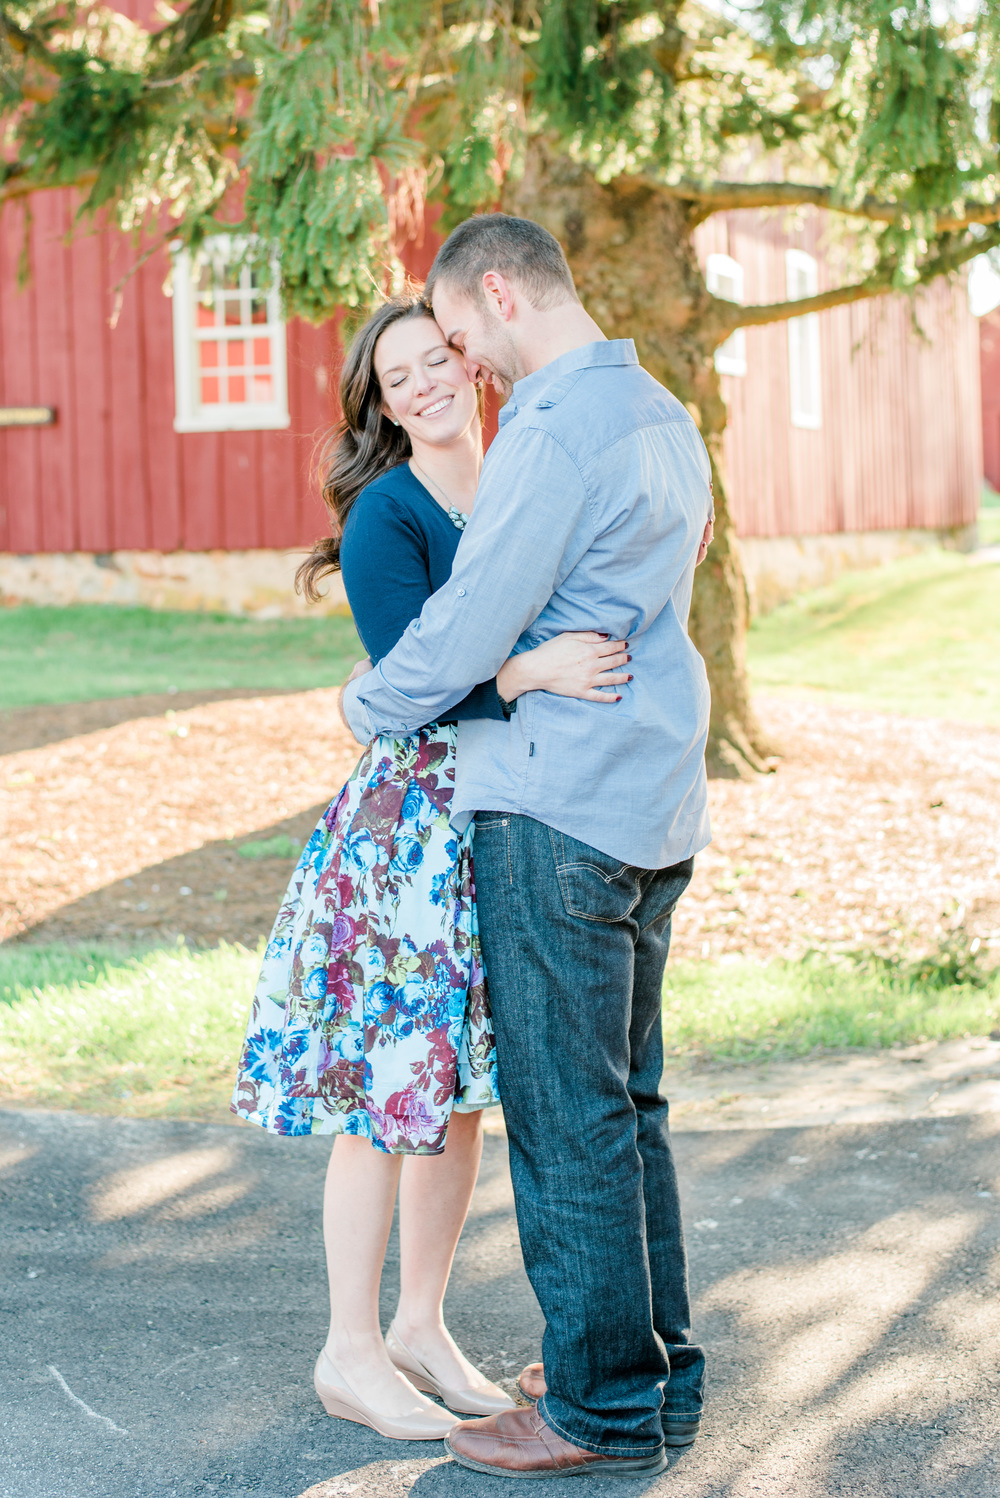 Spring Engagement Session in Chester County, PA | Krista Brackin Photography